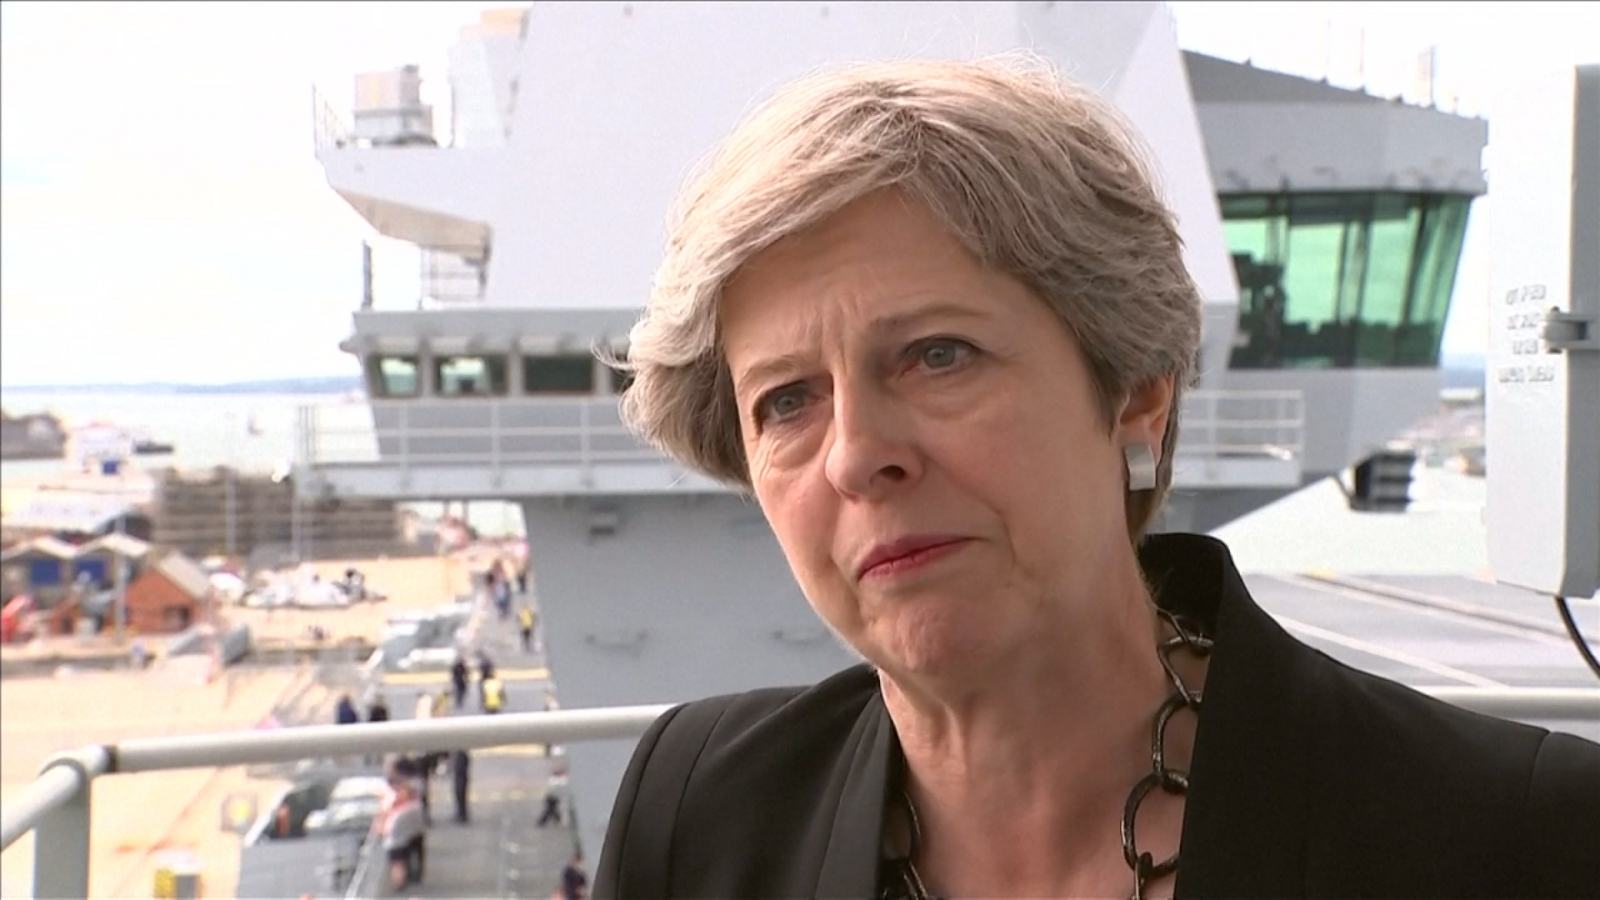 Theresa May sees 'no equivalence' between fascists and 'those who oppose them'